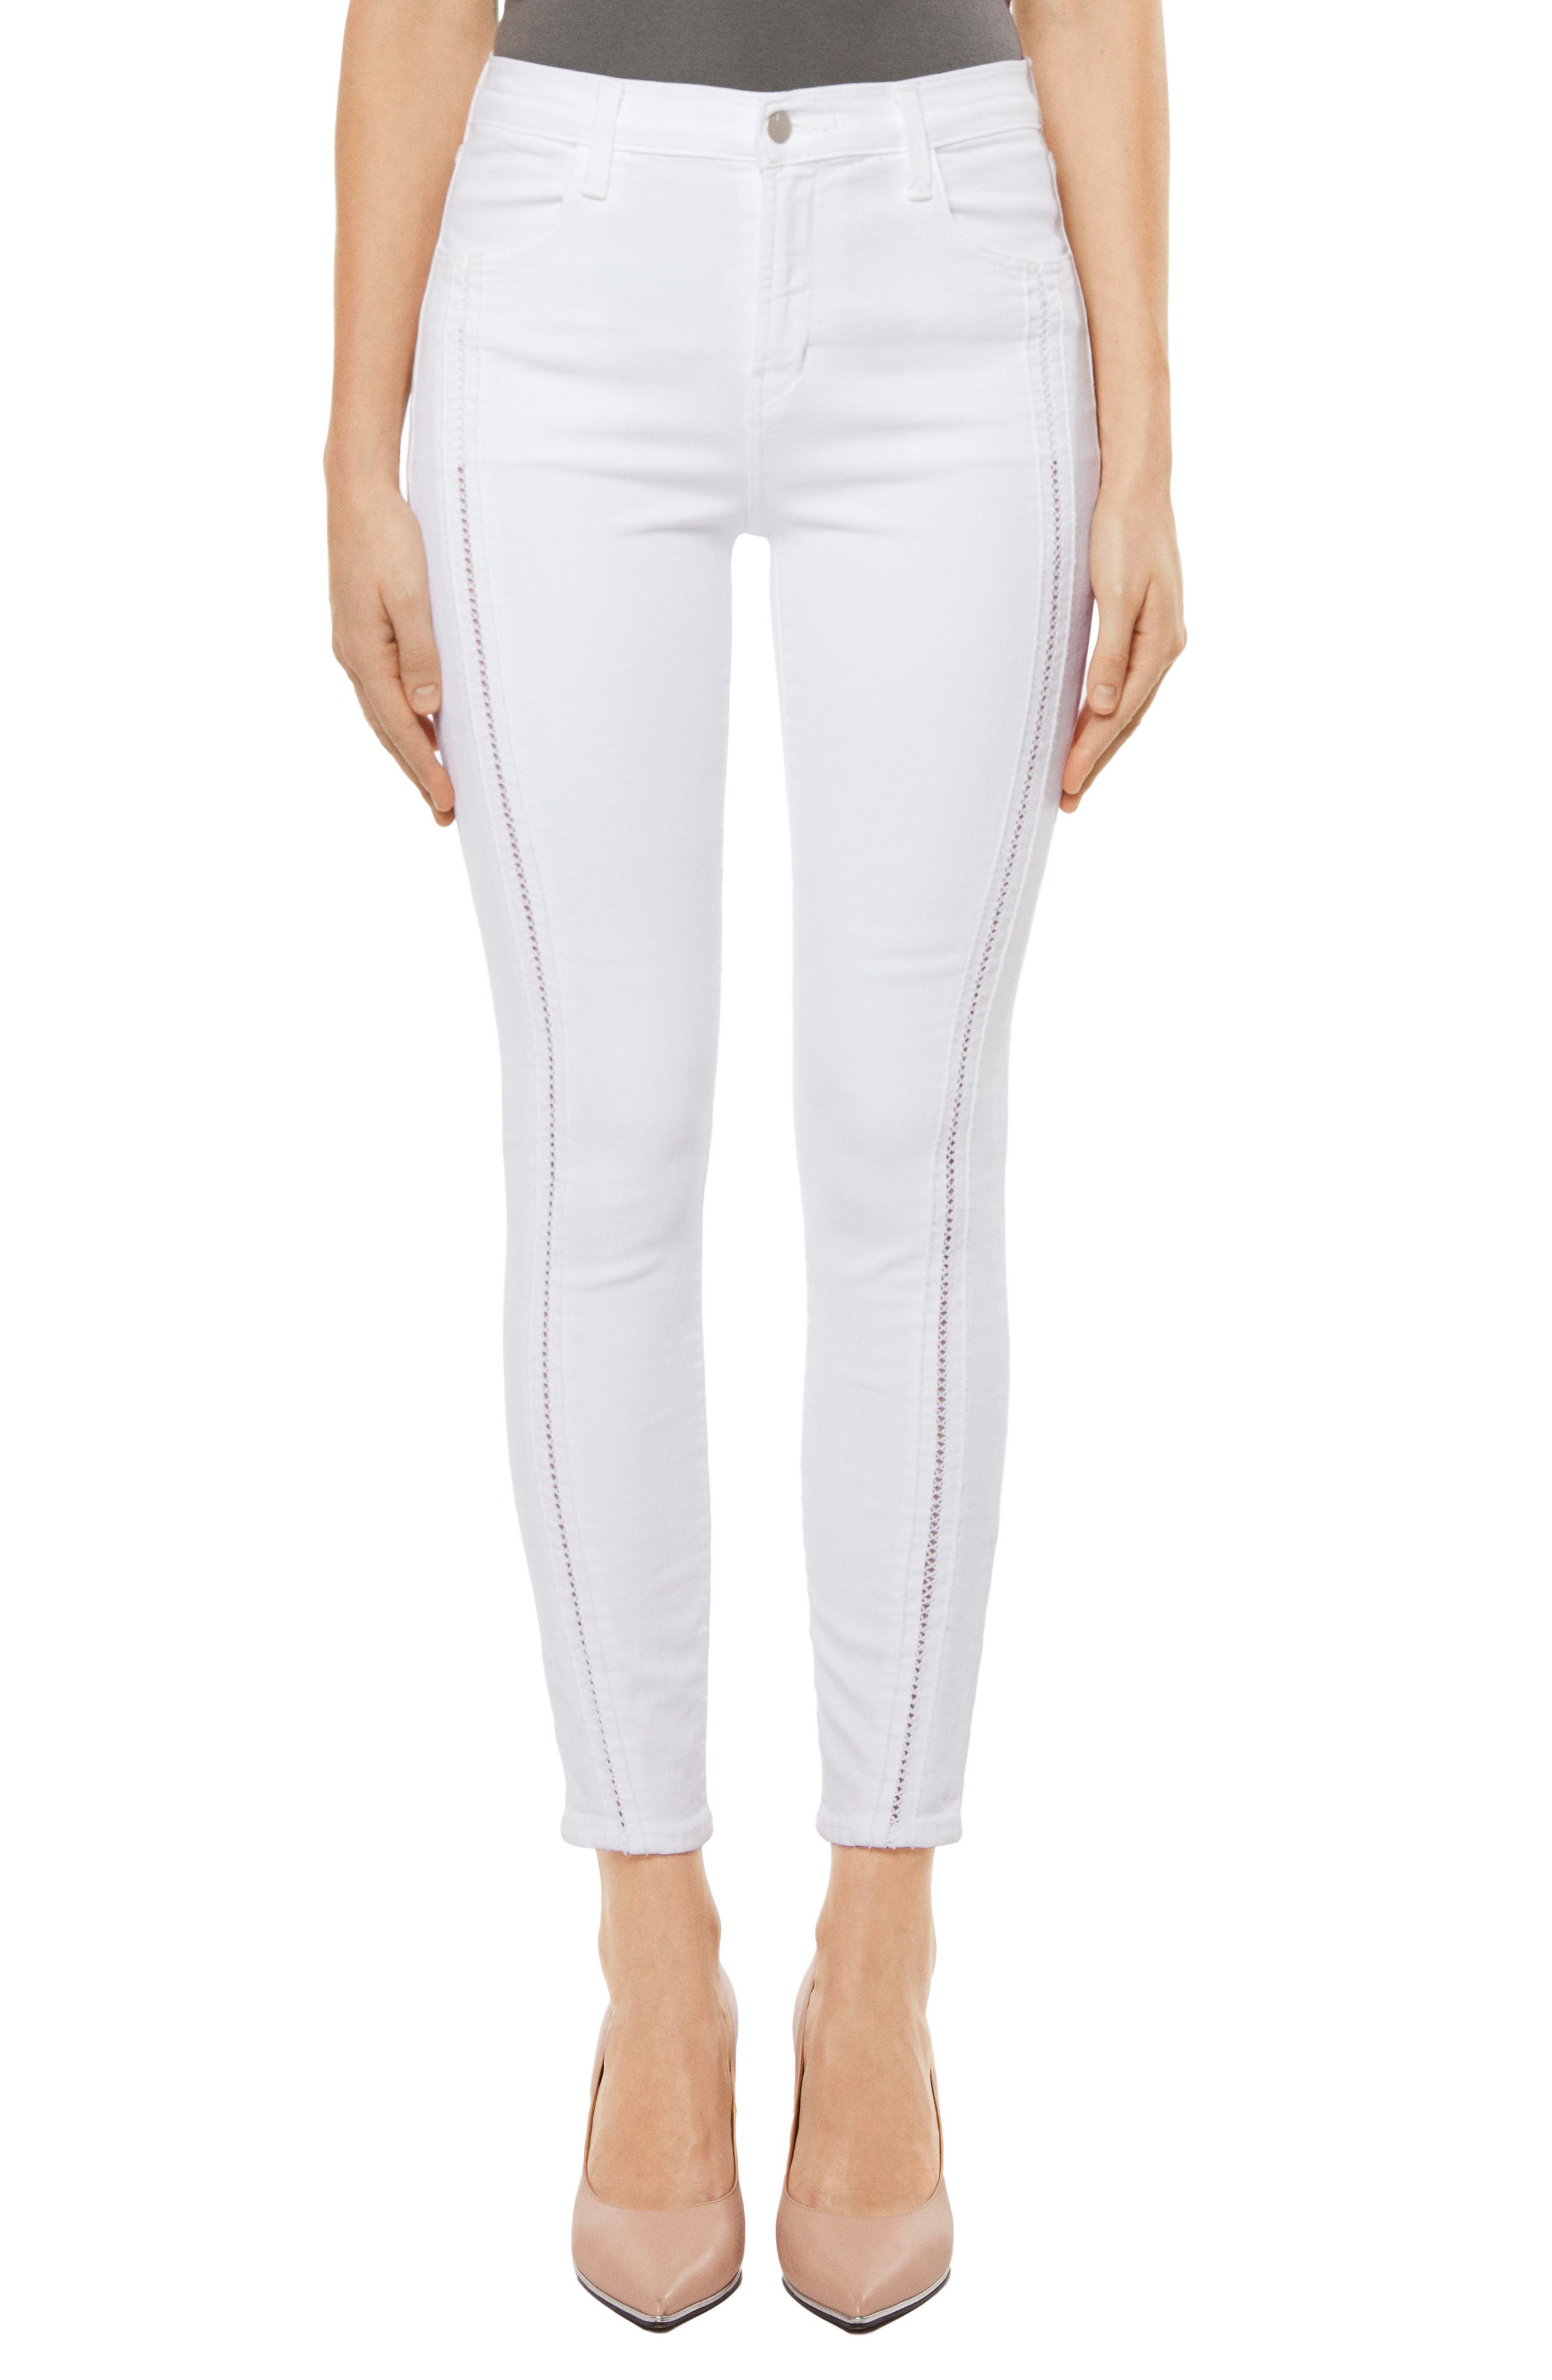 Alana High Waist Crop Skinny Jeans,                             Main thumbnail 1, color,                             White Ladder Lace